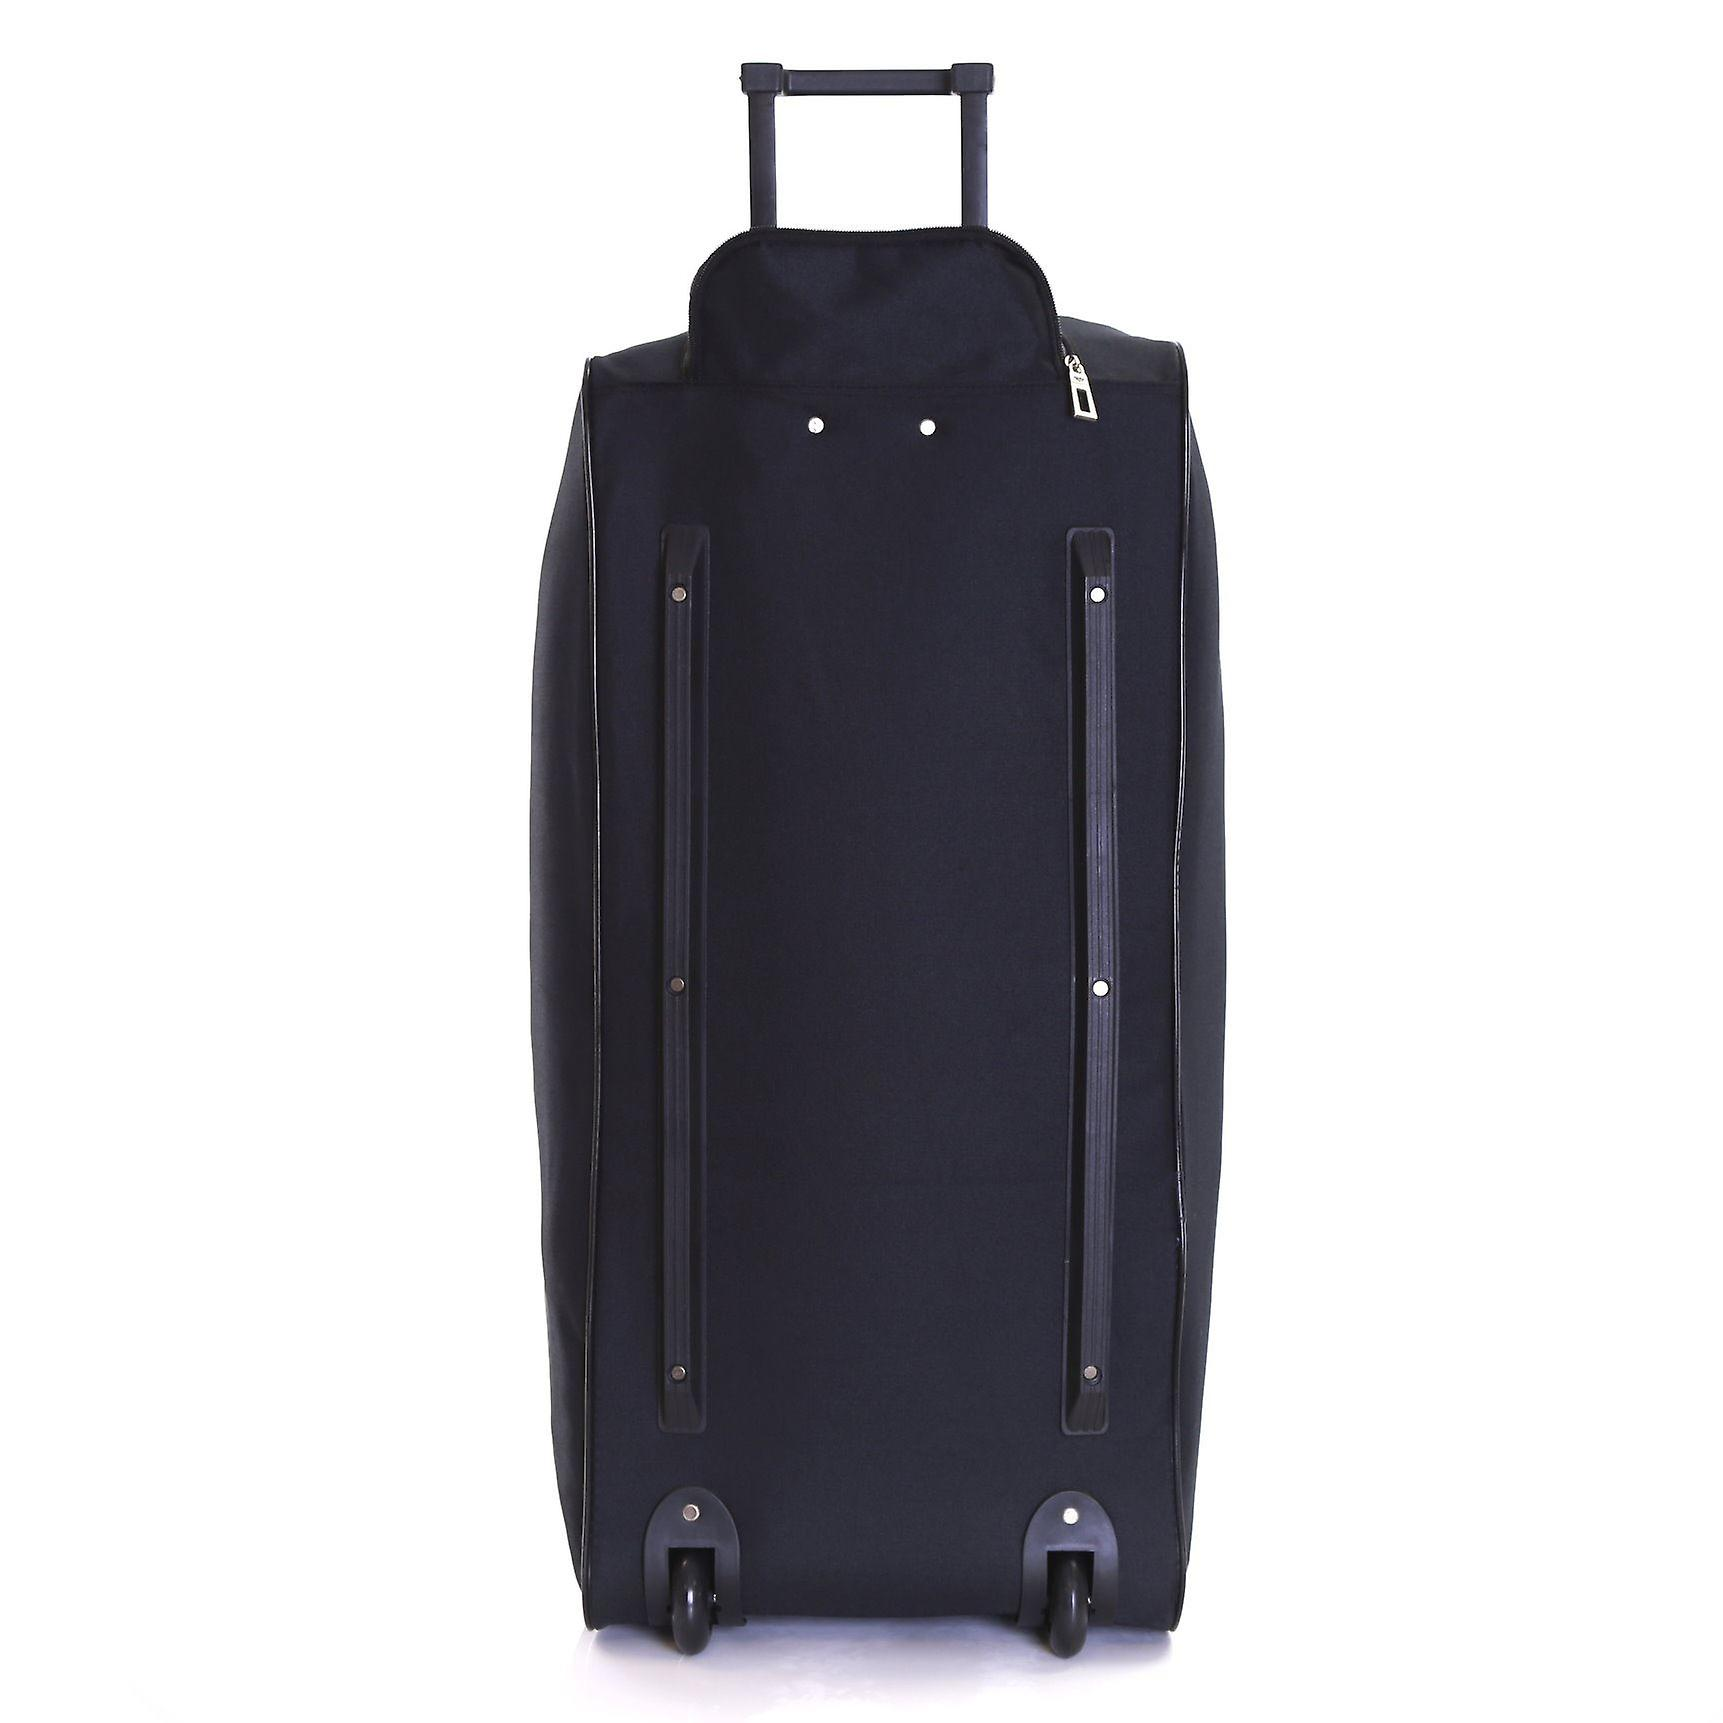 3369464d7774 Slimbridge Braga 30 Inch Wheeled Bag, Black